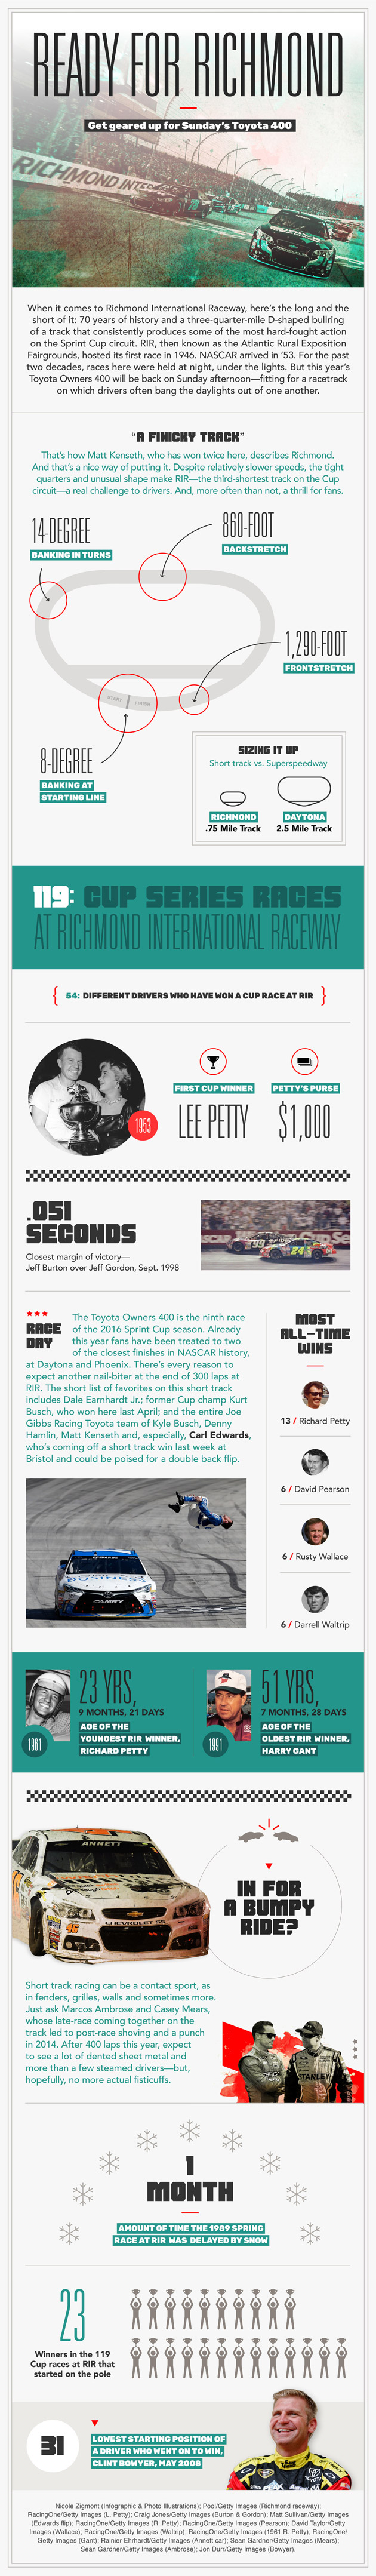 2016-richmond-nascar-preview-toyota-owners-400-infographic